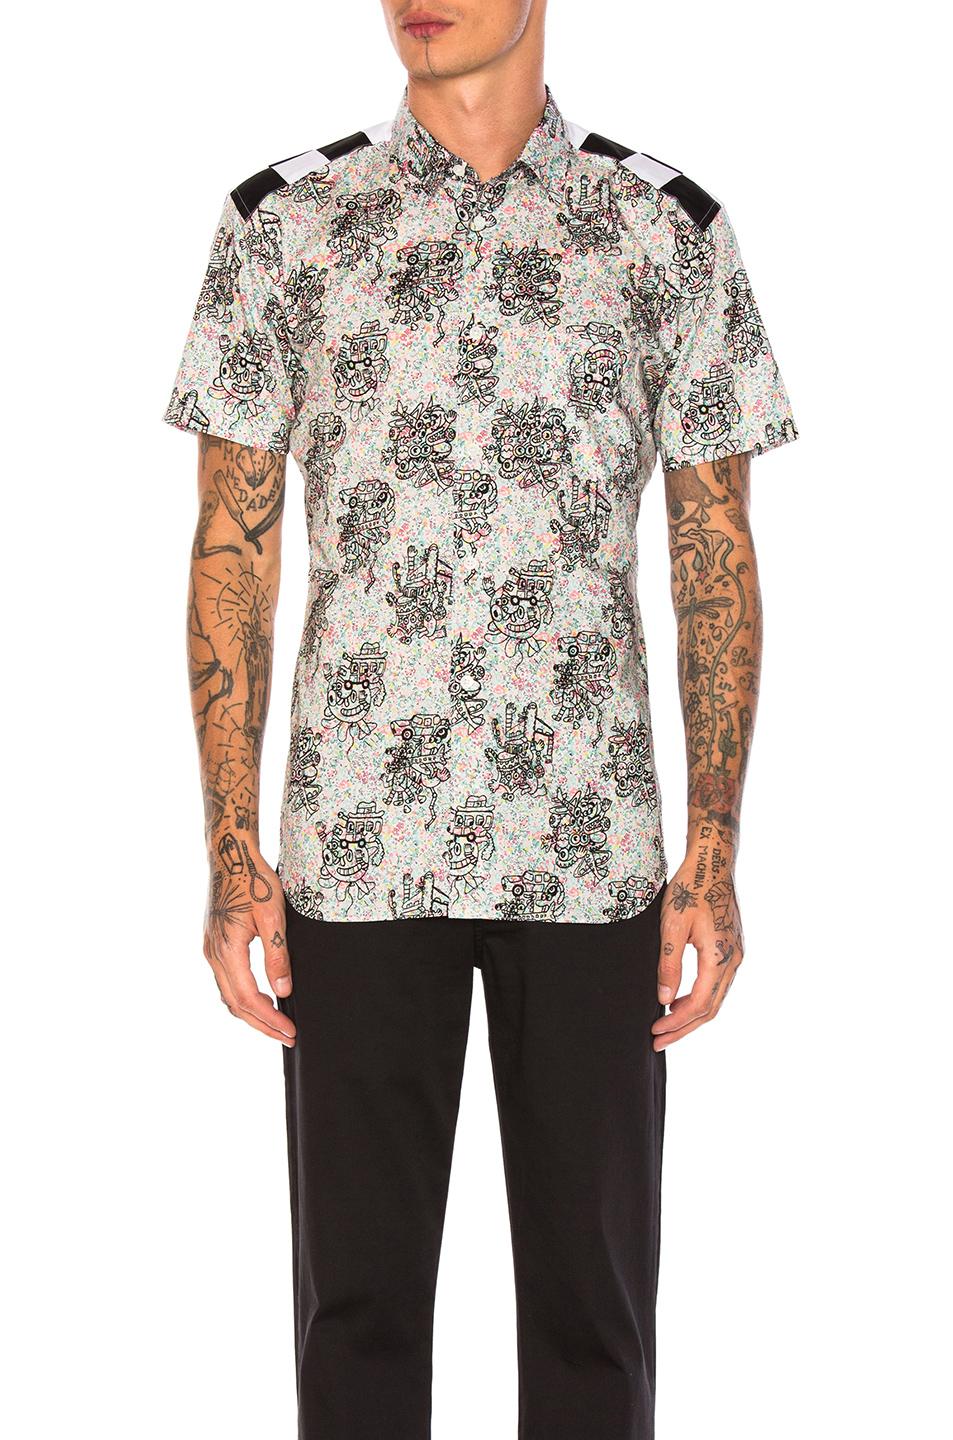 Comme Des Garcons SHIRT Cotton Lawn Flower Print Shirt in Floral,Blue,Abstract